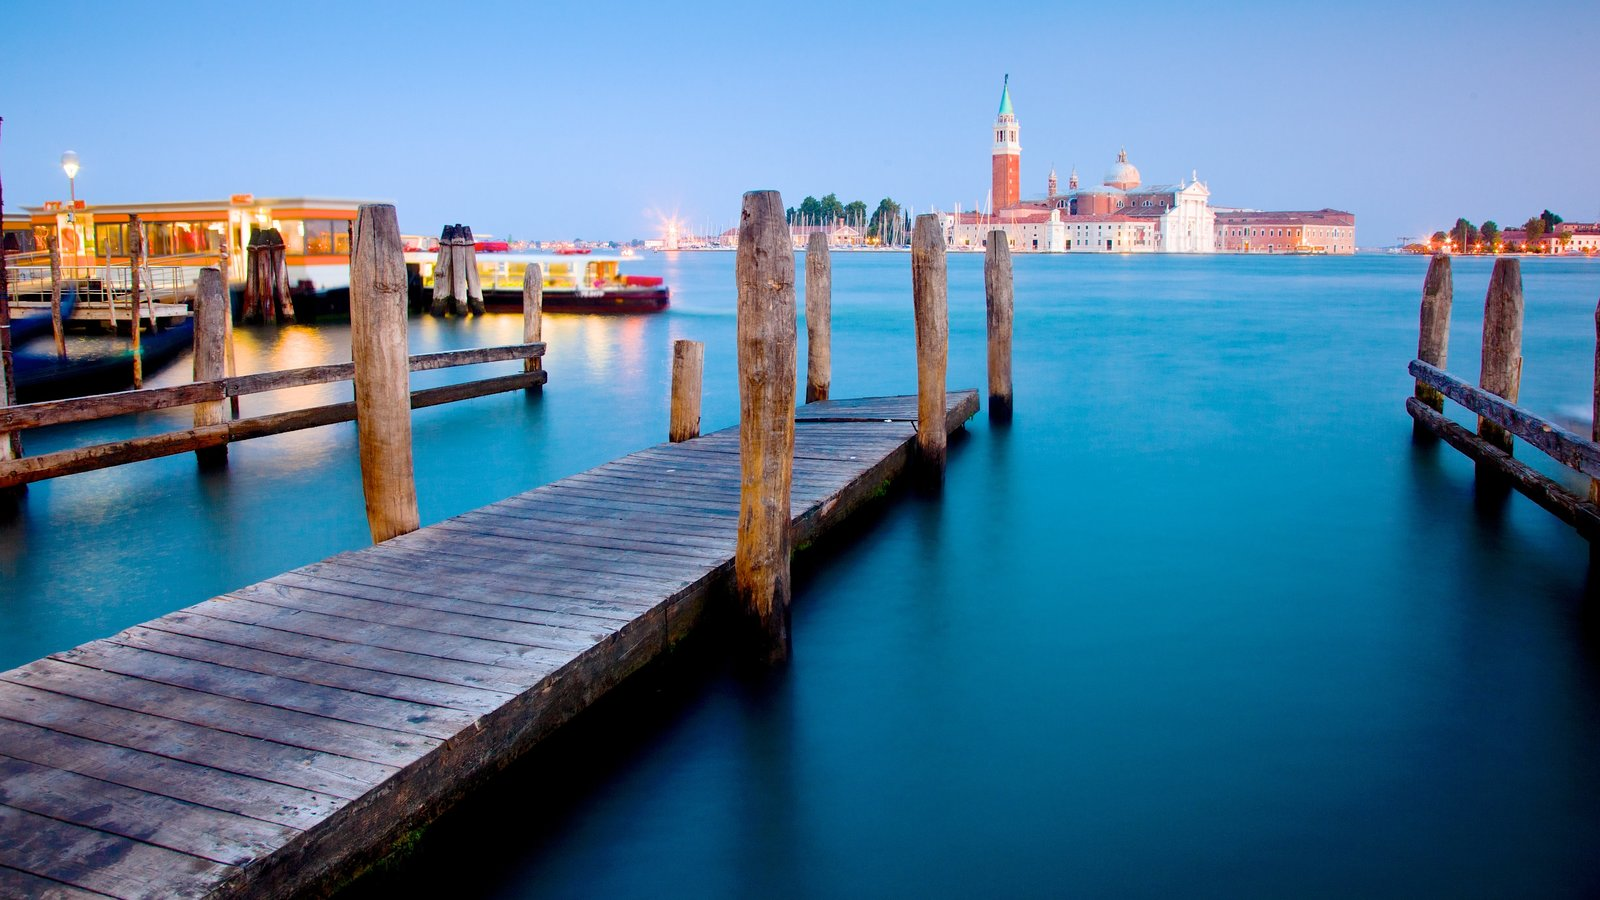 Church of San Giorgio Maggiore which includes a church or cathedral, a bay or harbor and religious aspects